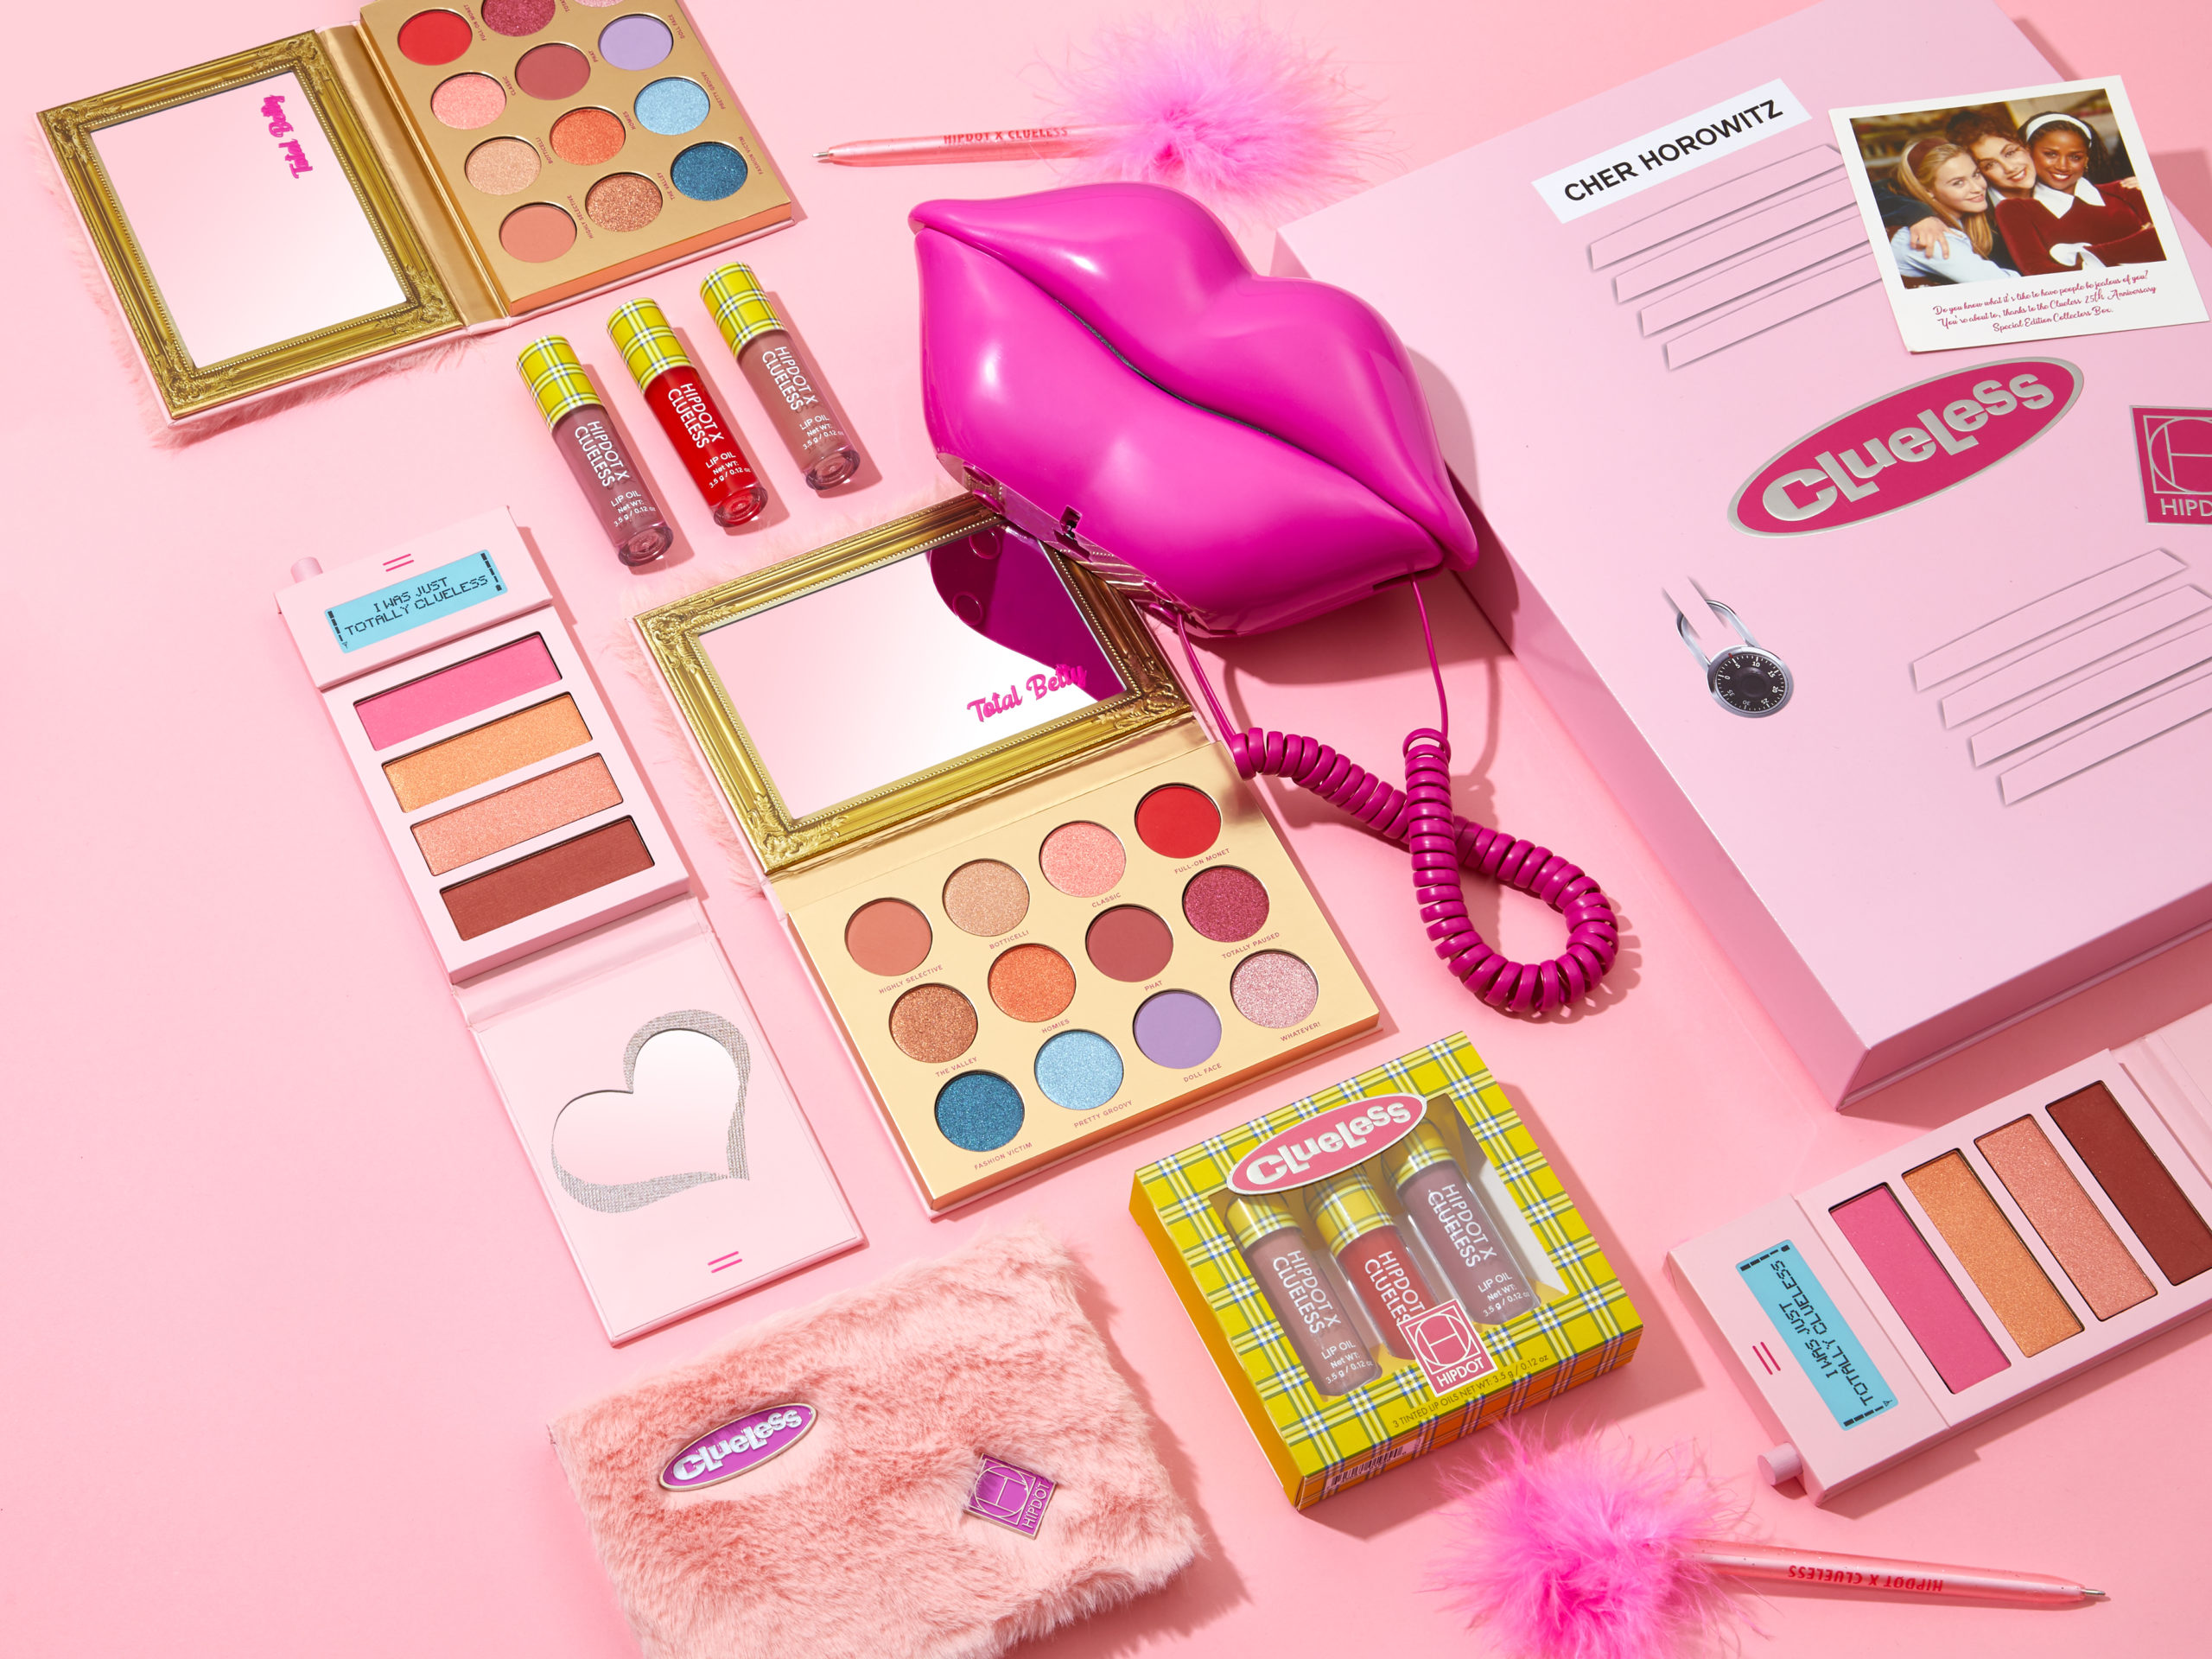 An array of makeup against a pink backdrop